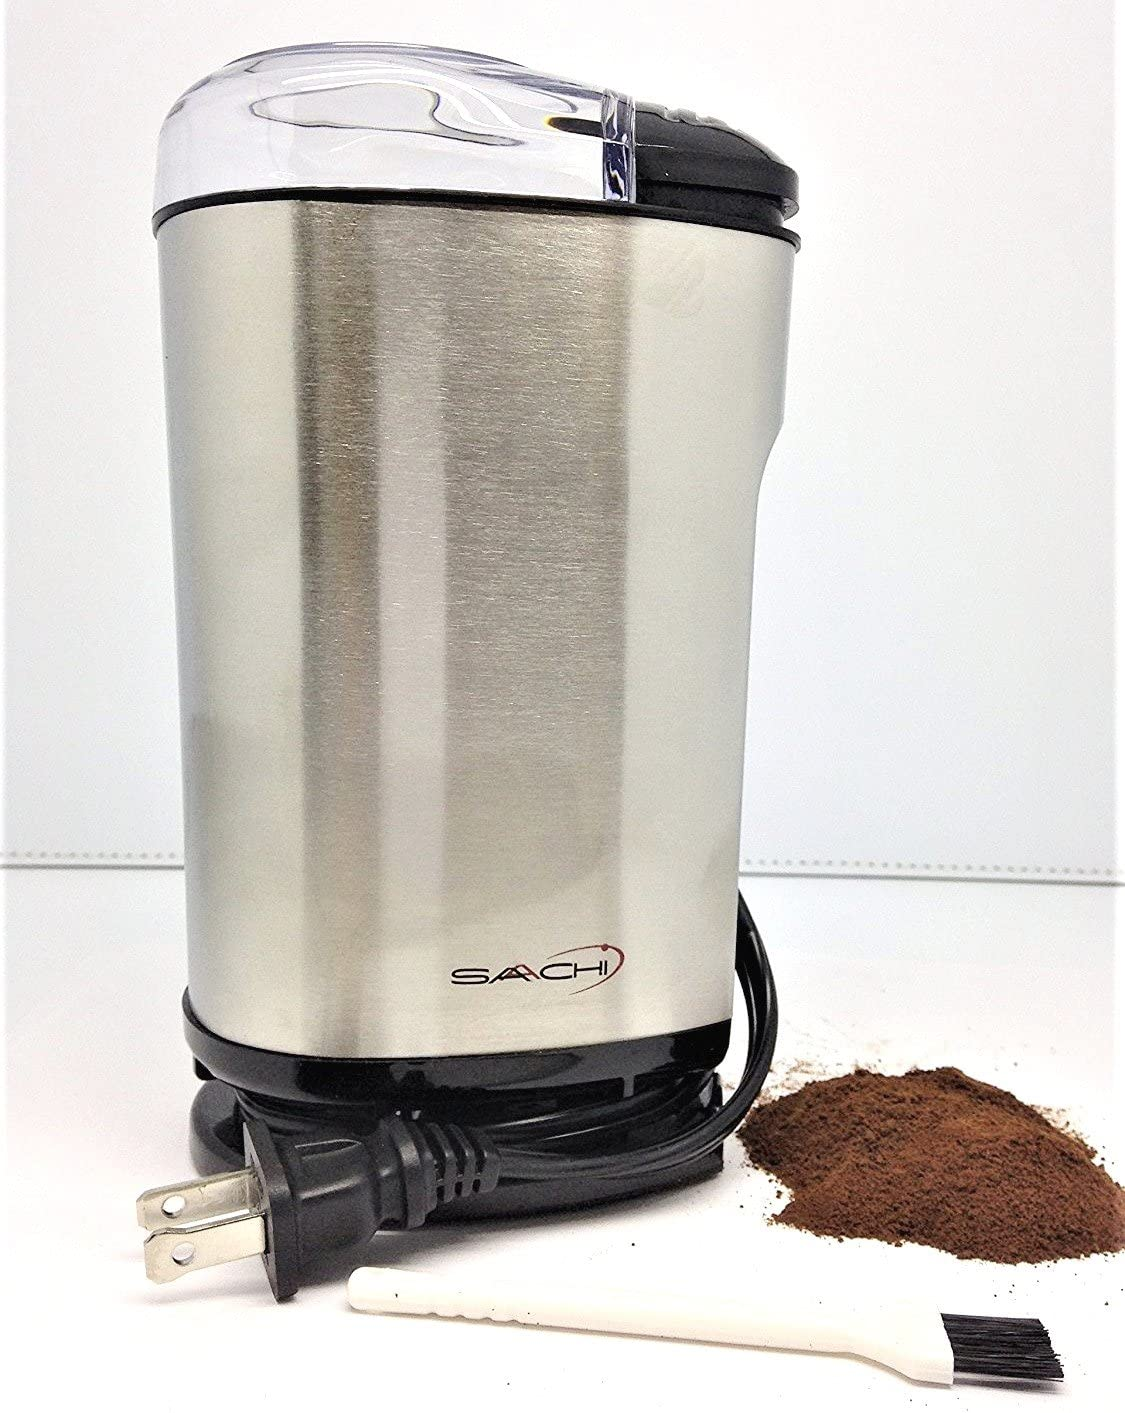 Saachi Electric Powerful Coffee and Spice Grinder